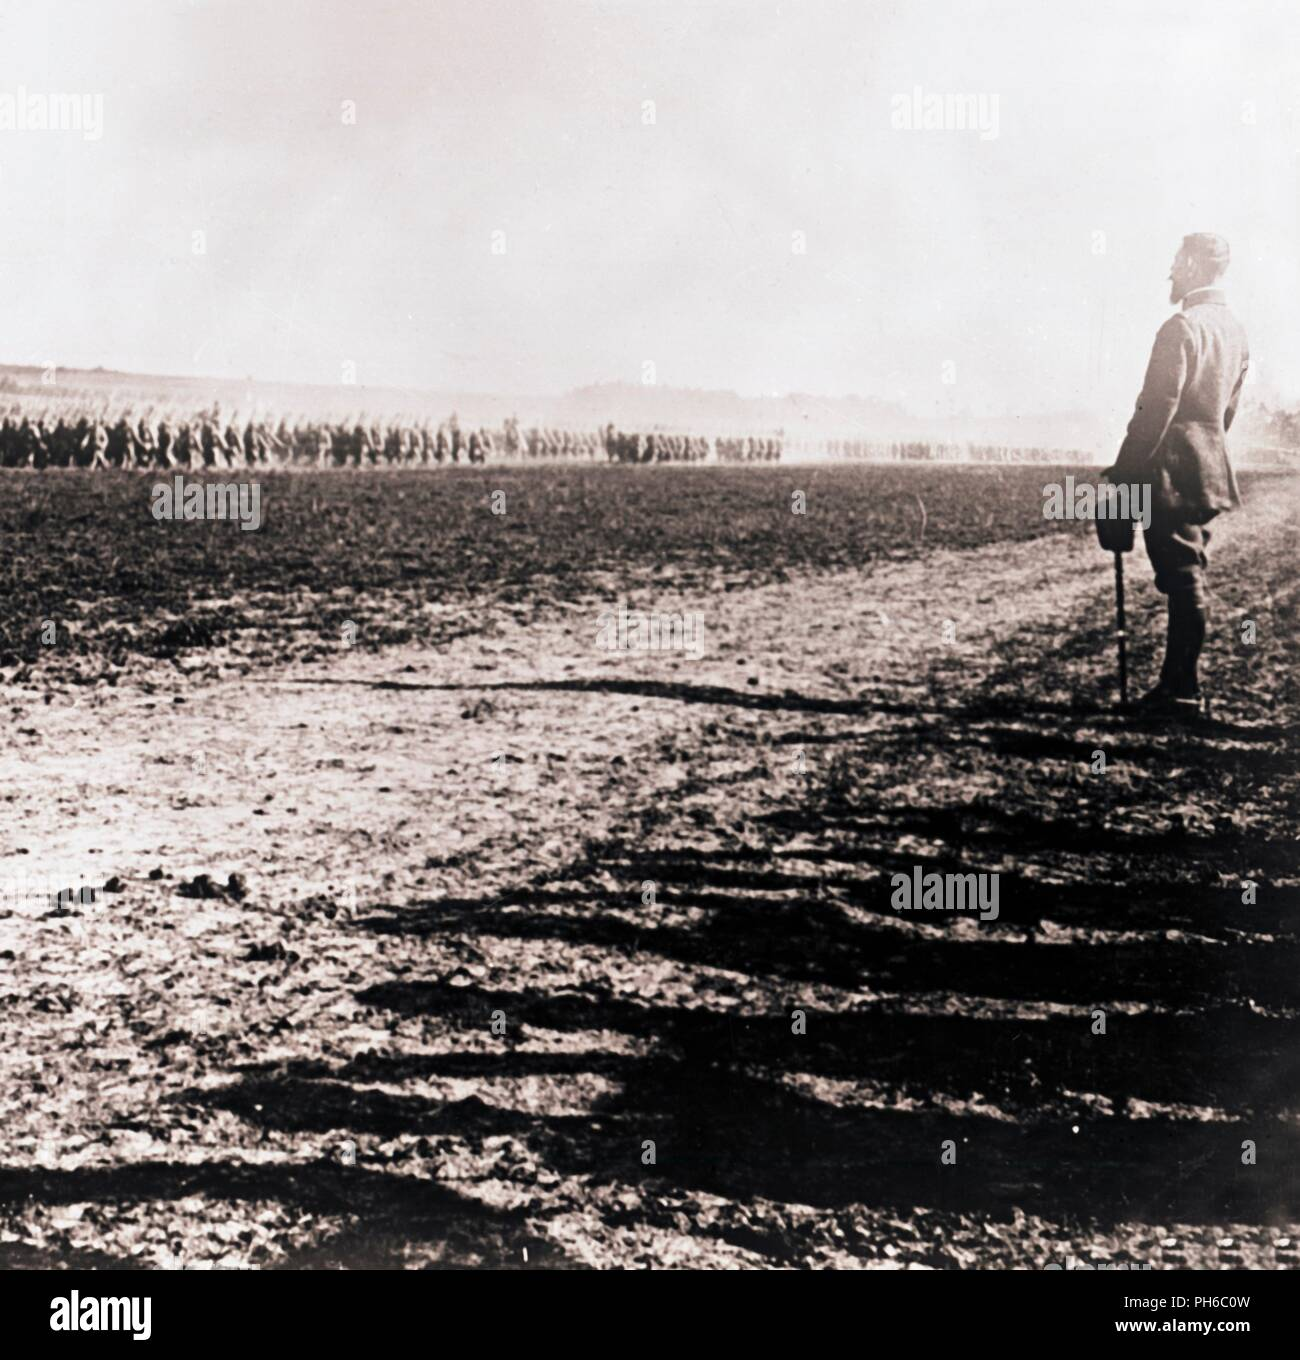 General Henri Gouraud surveying field of troops, c1914-c1918.  Artist: Unknown. Stock Photo